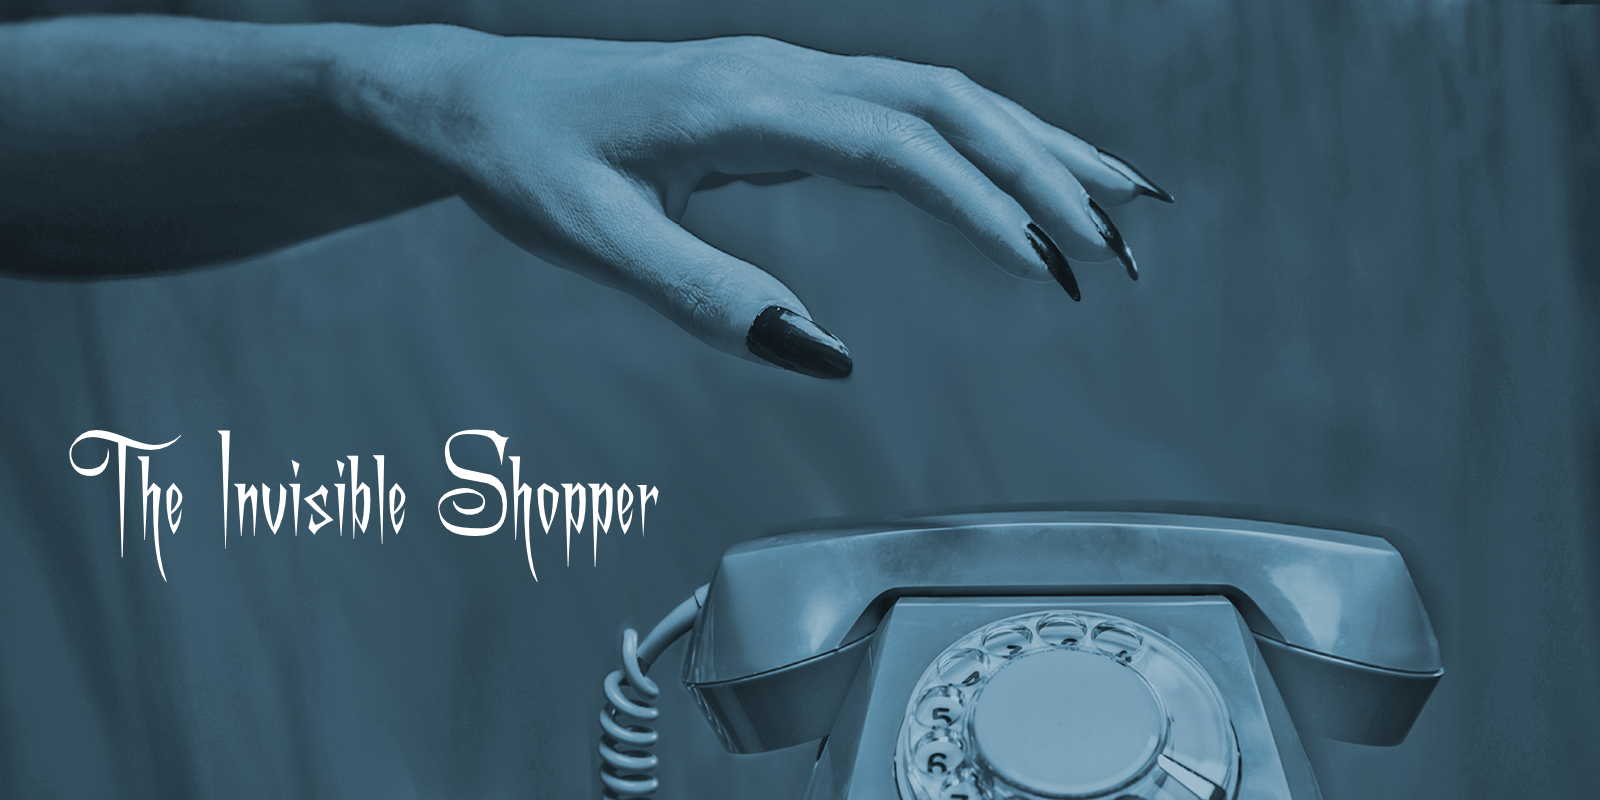 Customer Service Horror Stories: The Invisible Shopper